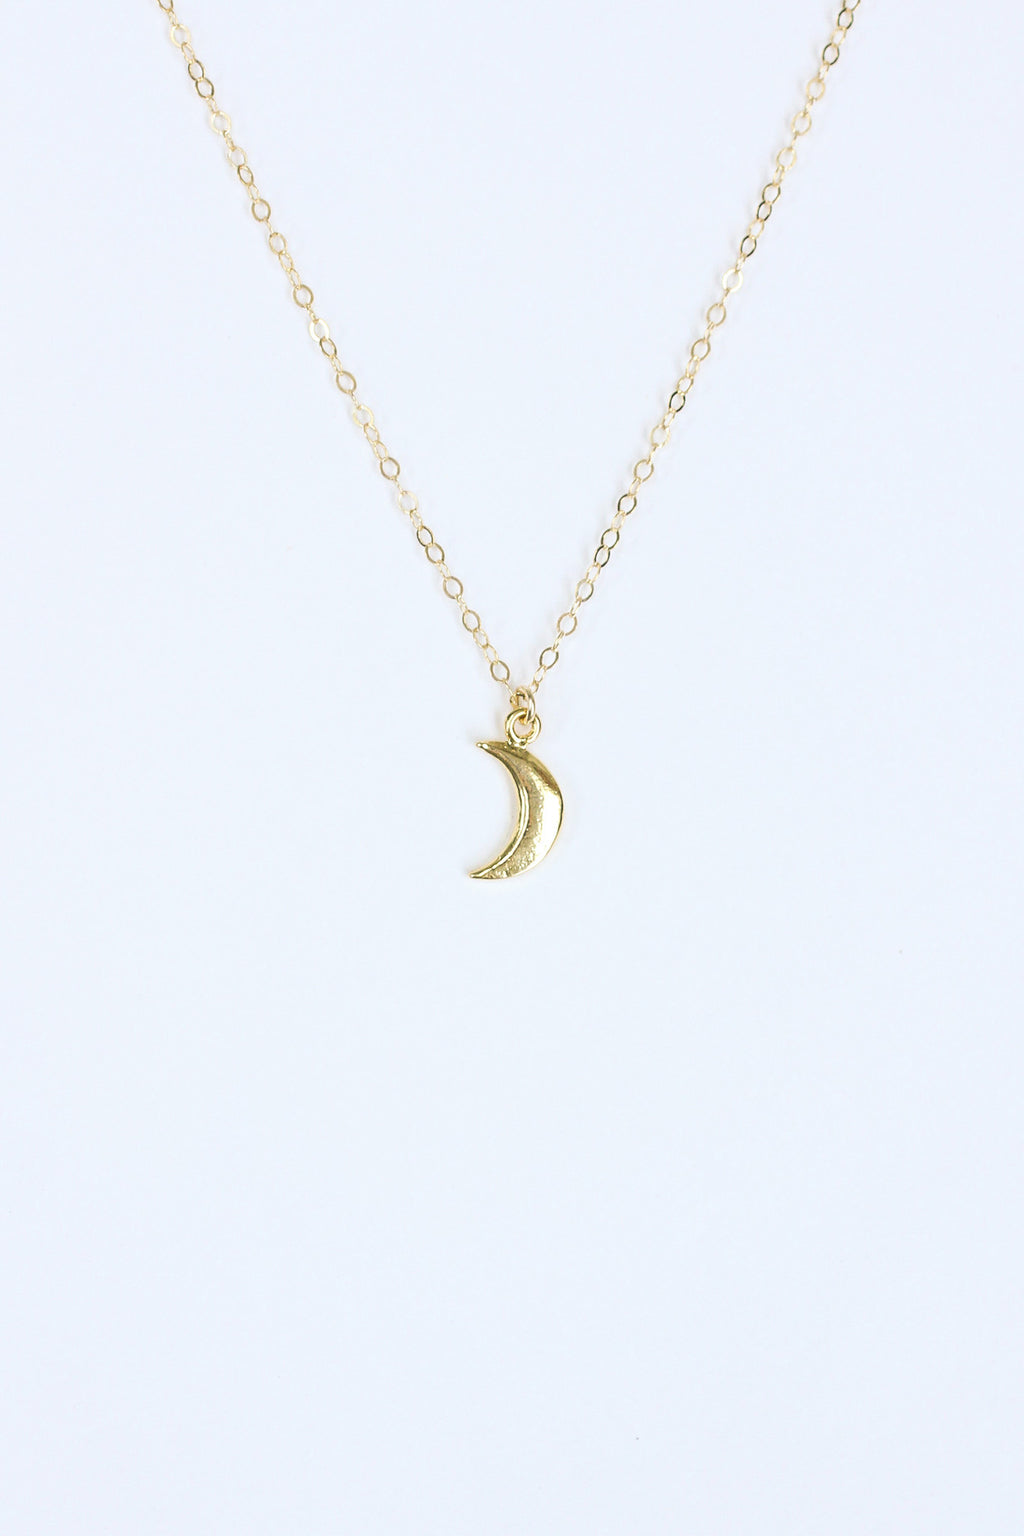 Petite Lunar Necklace - Christine Elizabeth Jewelry - Glamour and Glow  - 2